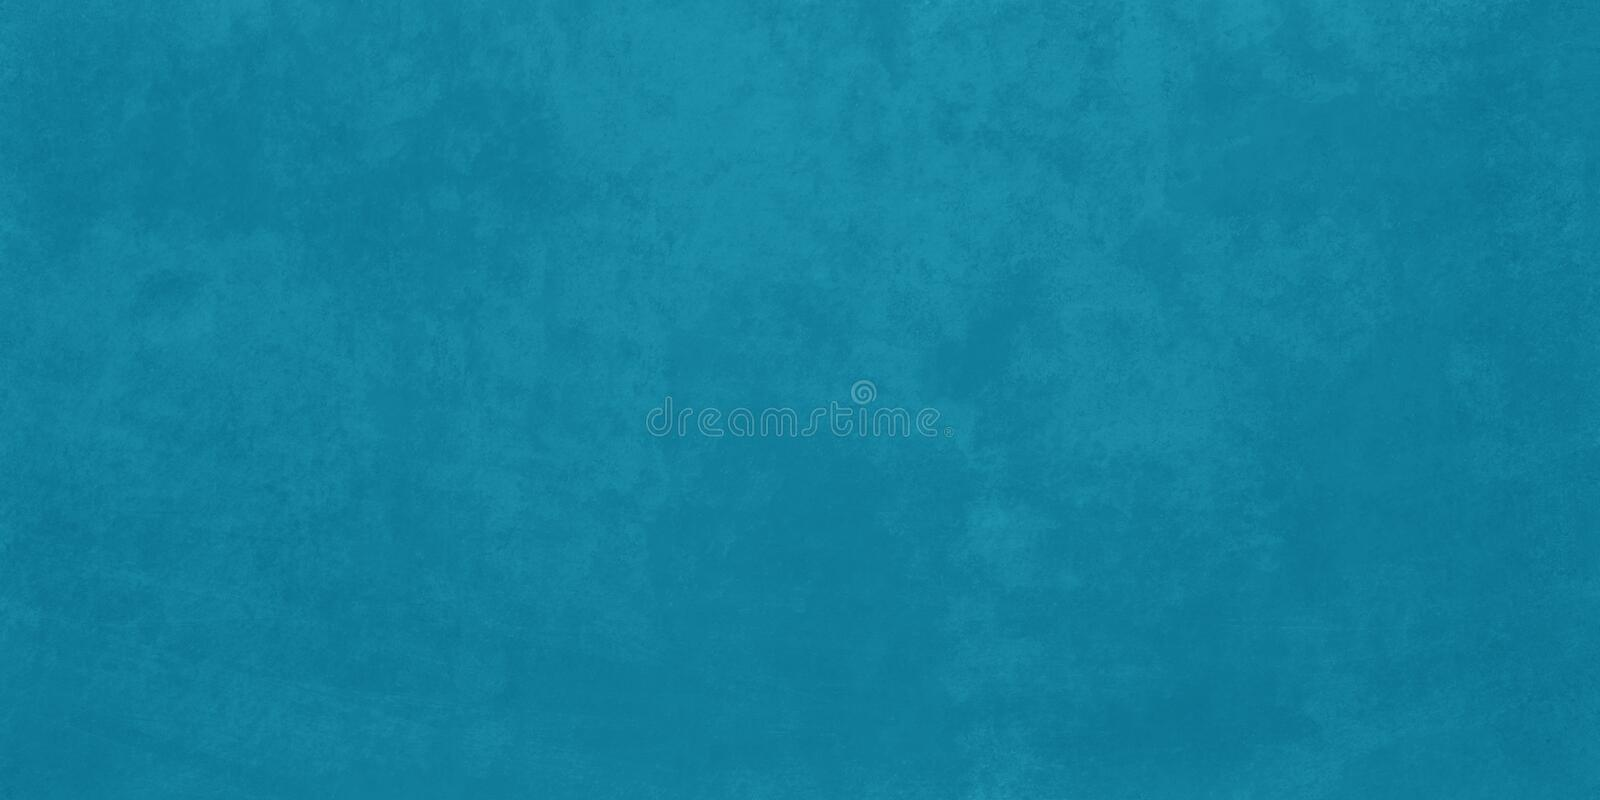 Blue background with faint detailed old vintage grunge texture that is faded stained and marbled vector illustration